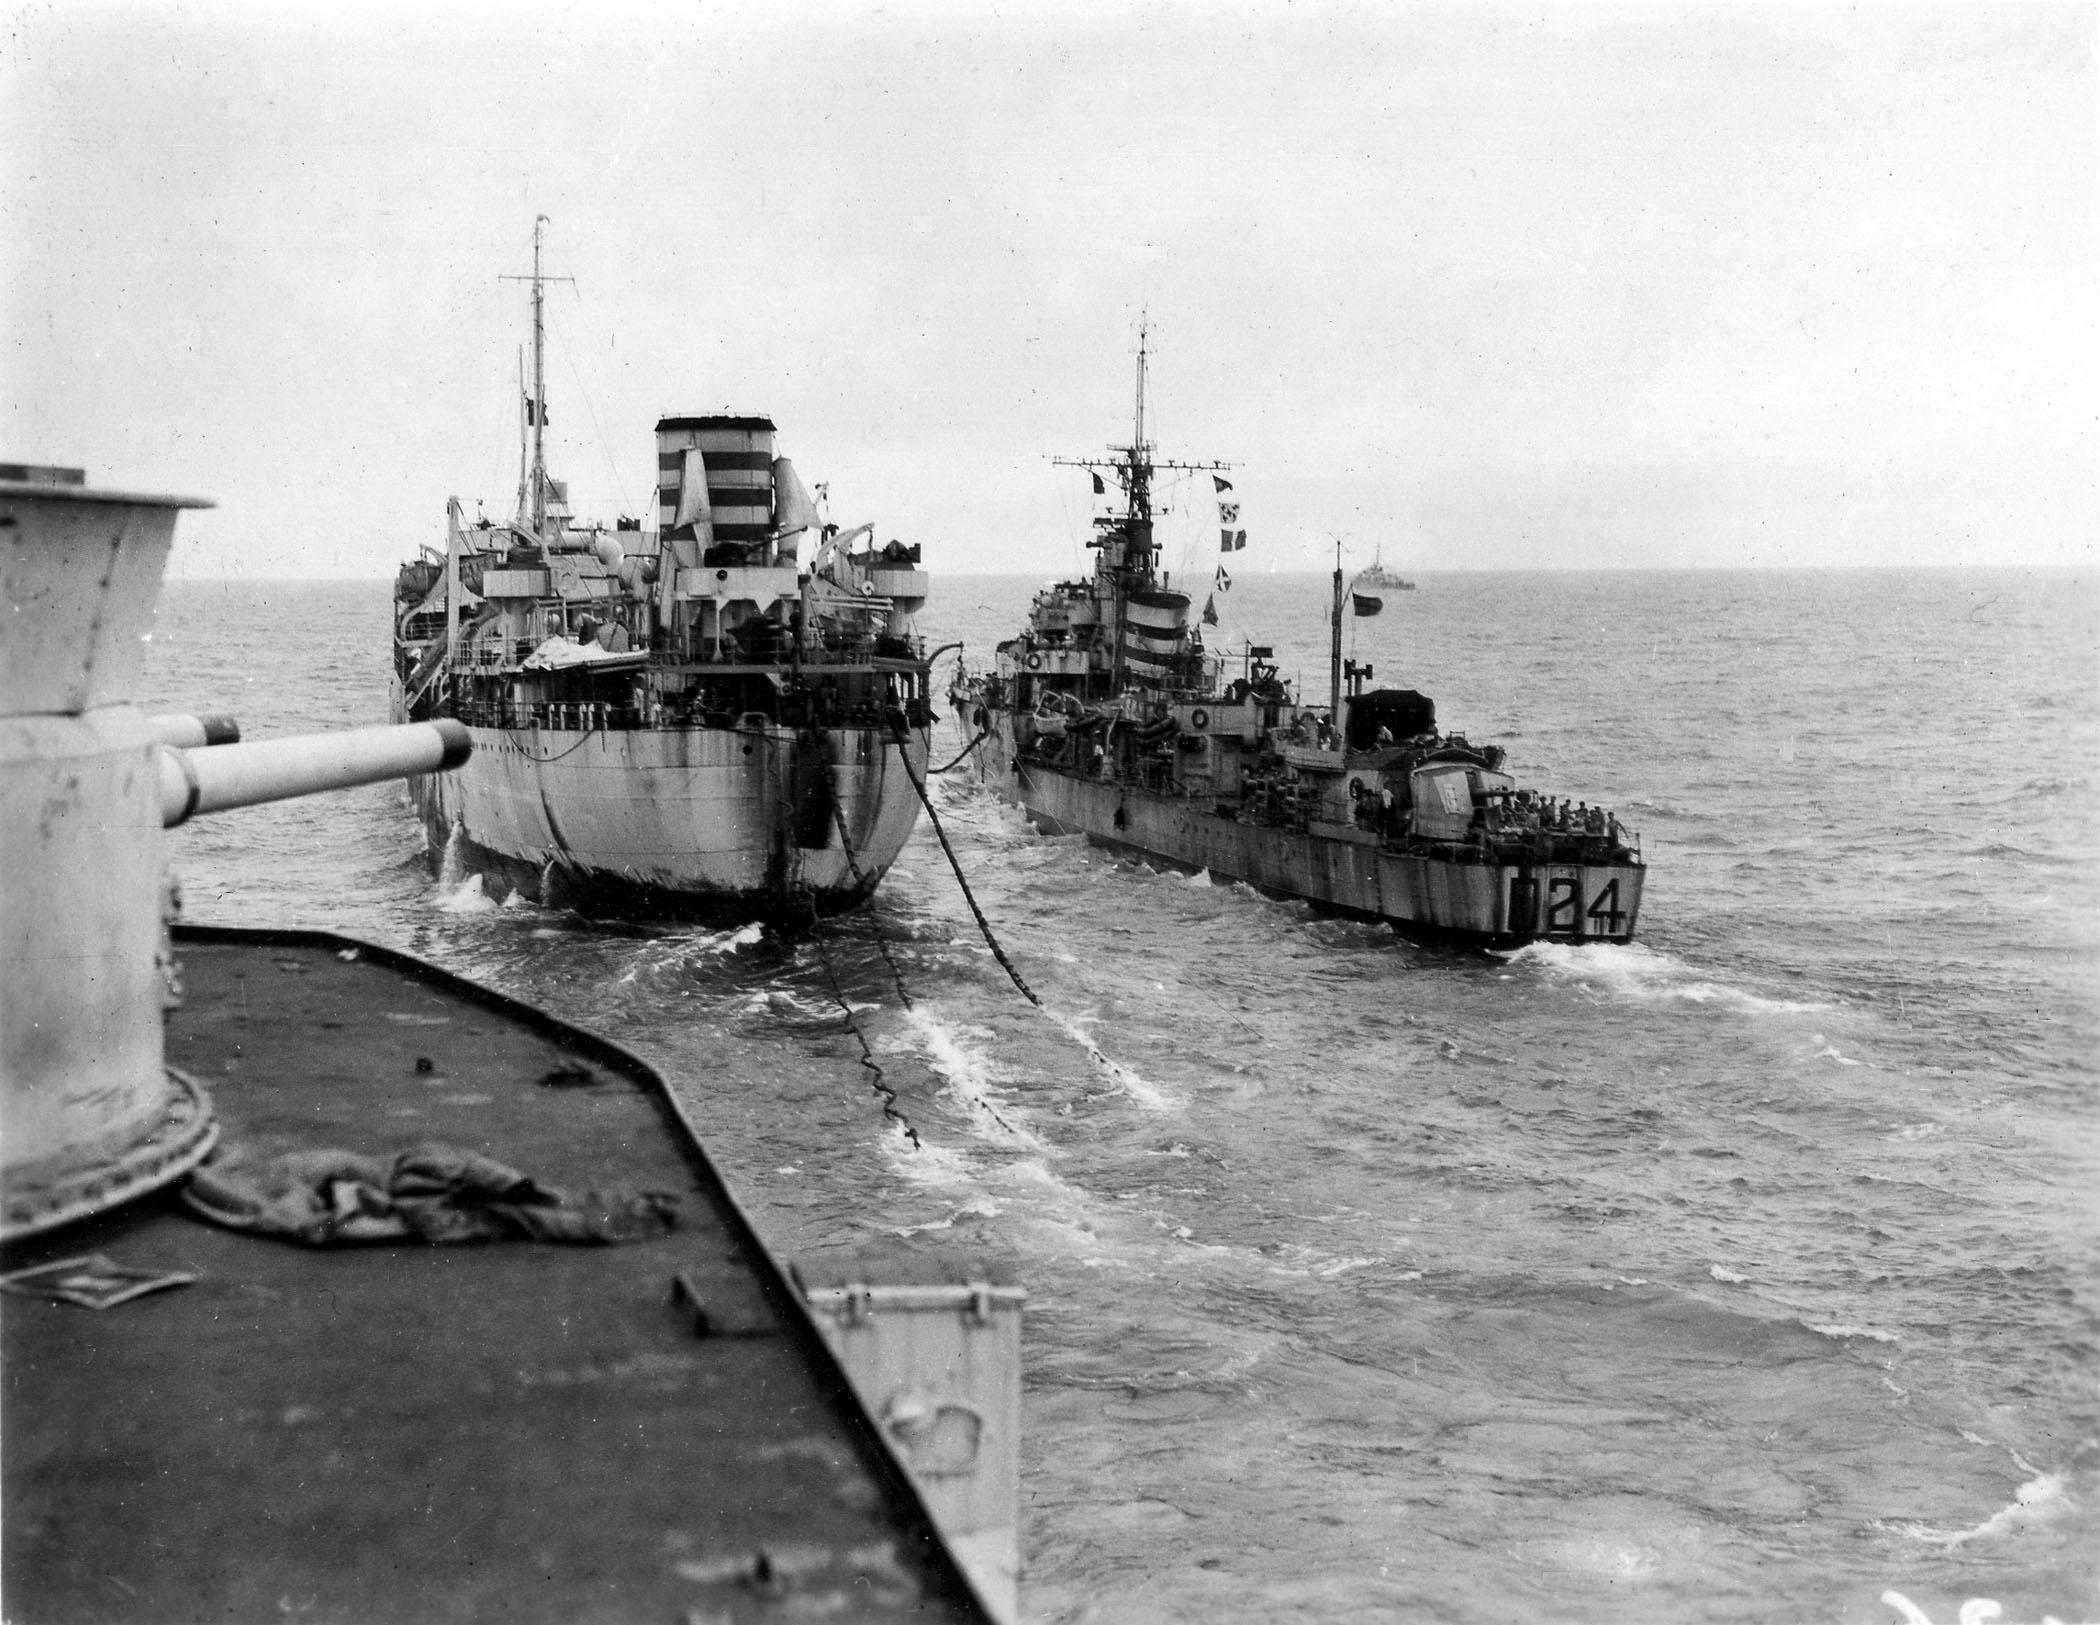 The destroyer HMS ULYSSES refuels alongside a Royal Navy auxiliary as a carrier, either HMS INDEFATIGABLE or IMPLACABLE approaches.